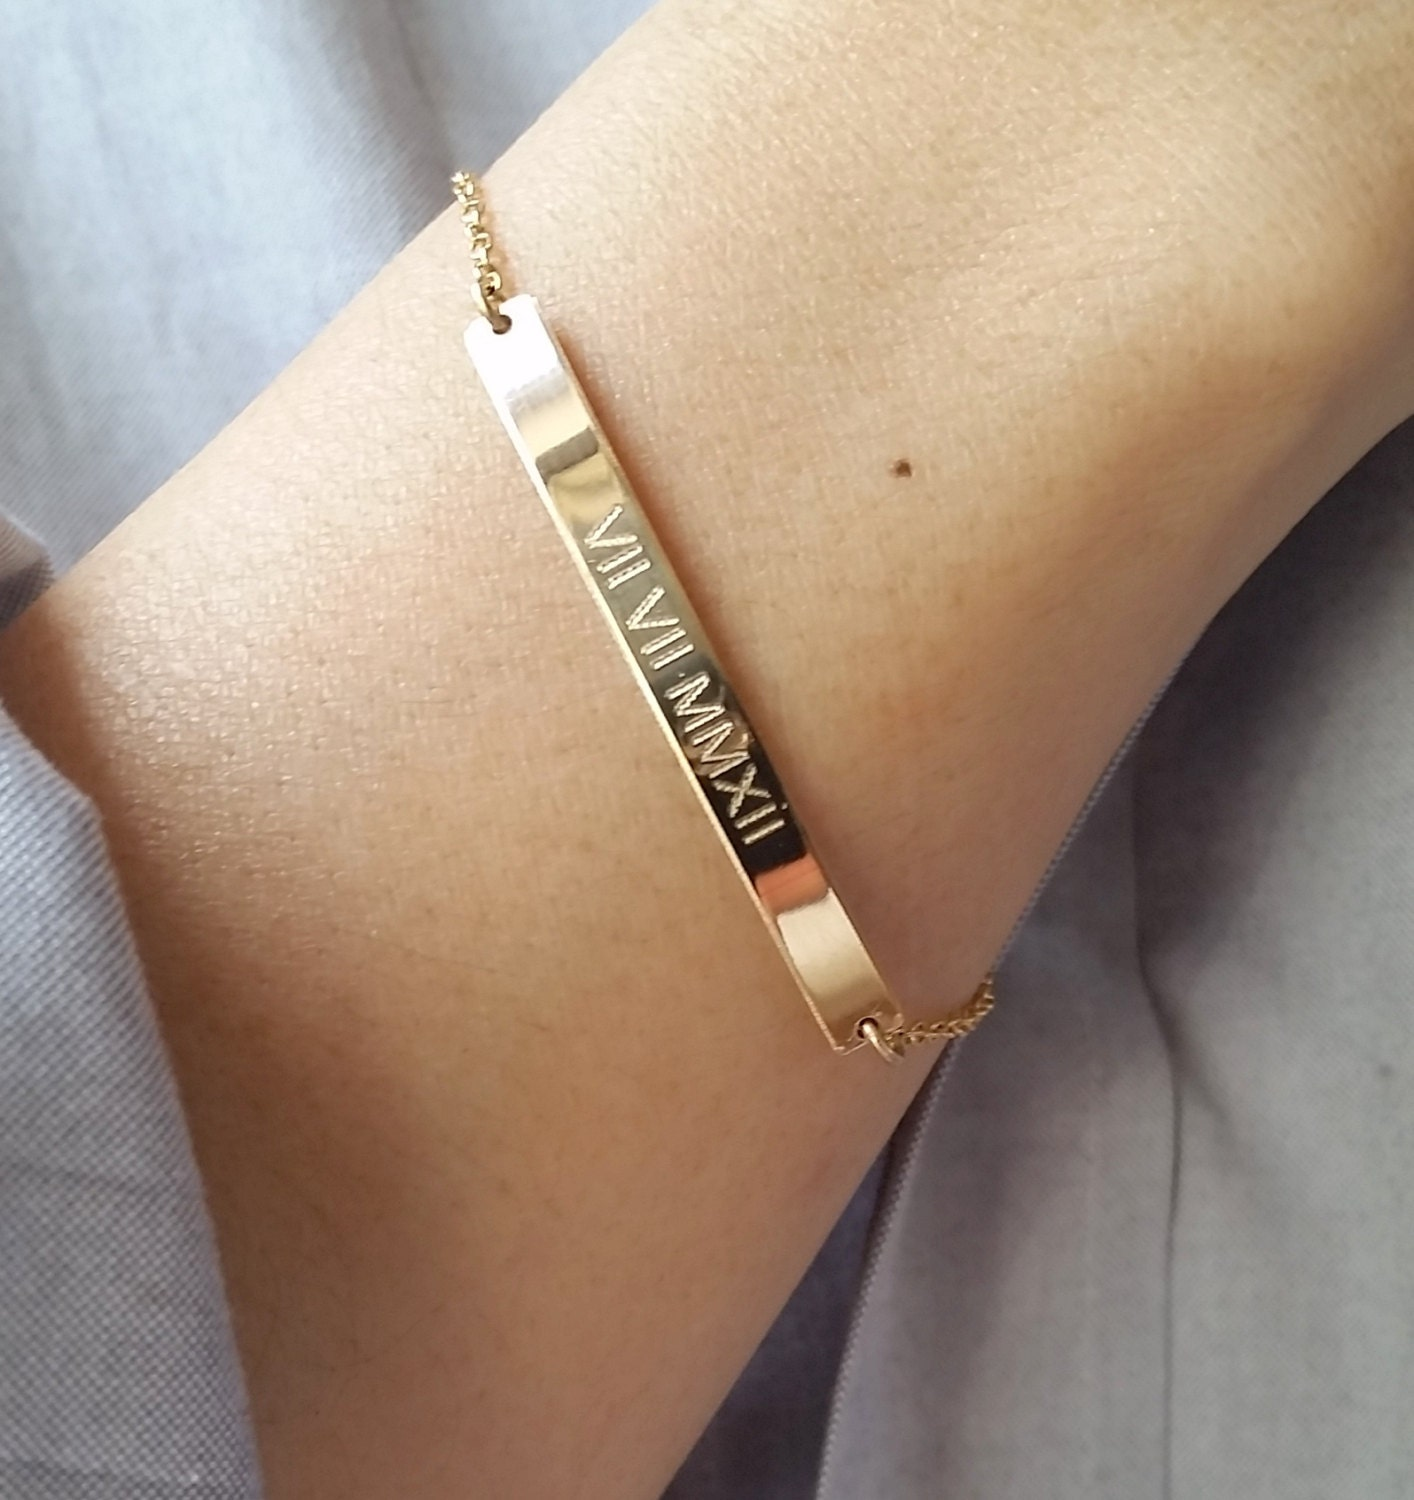 personalized products product inside image bracelet purity